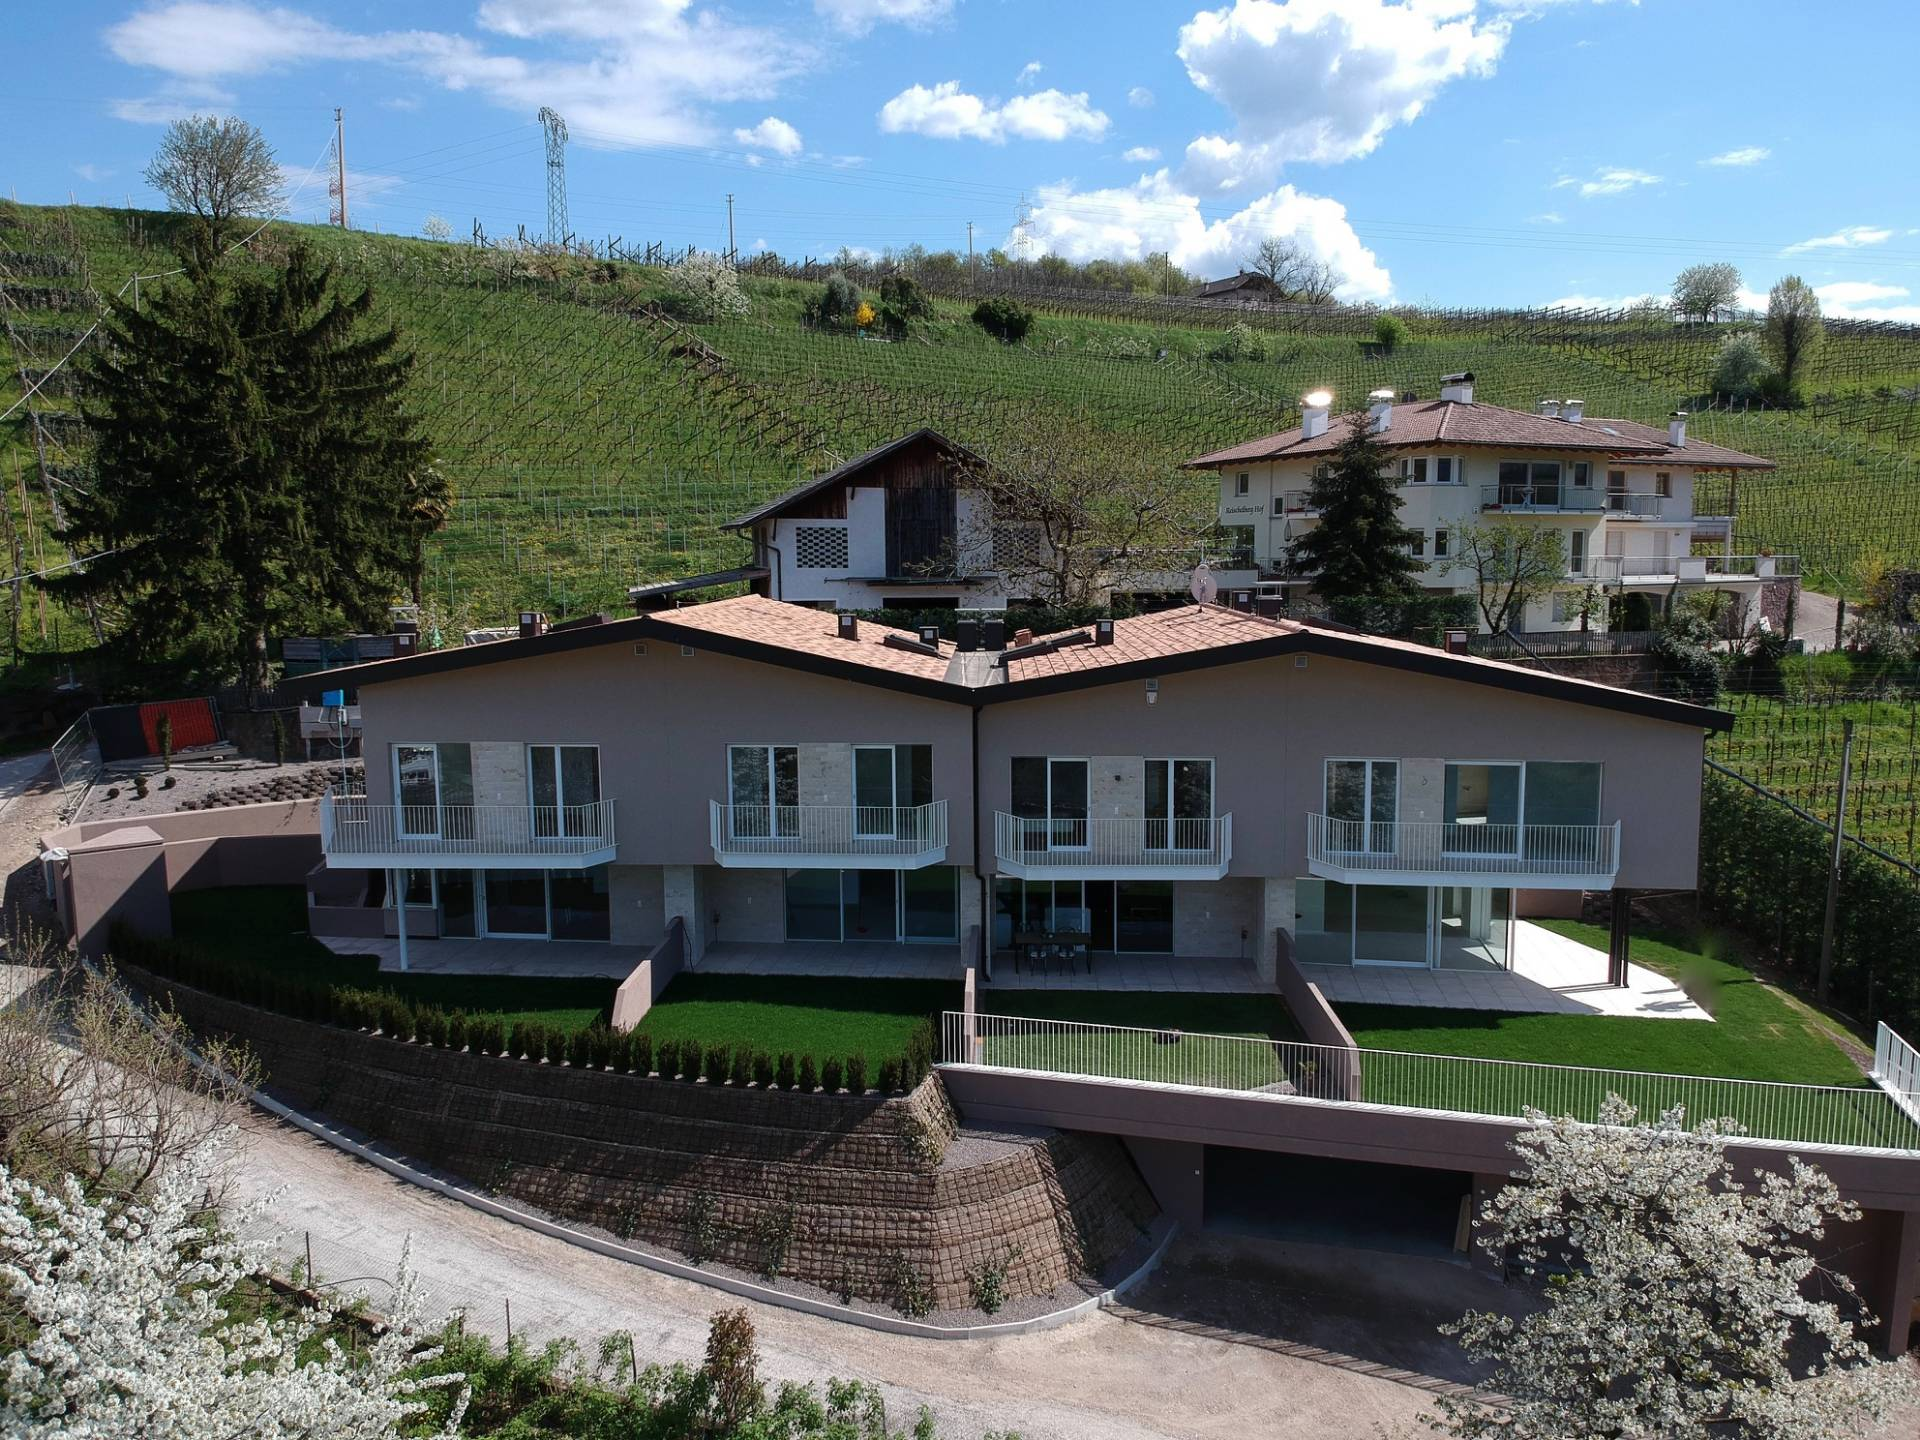 Residential complex to Appiano sulla strada del vino - Eppan an der Weinstrasse